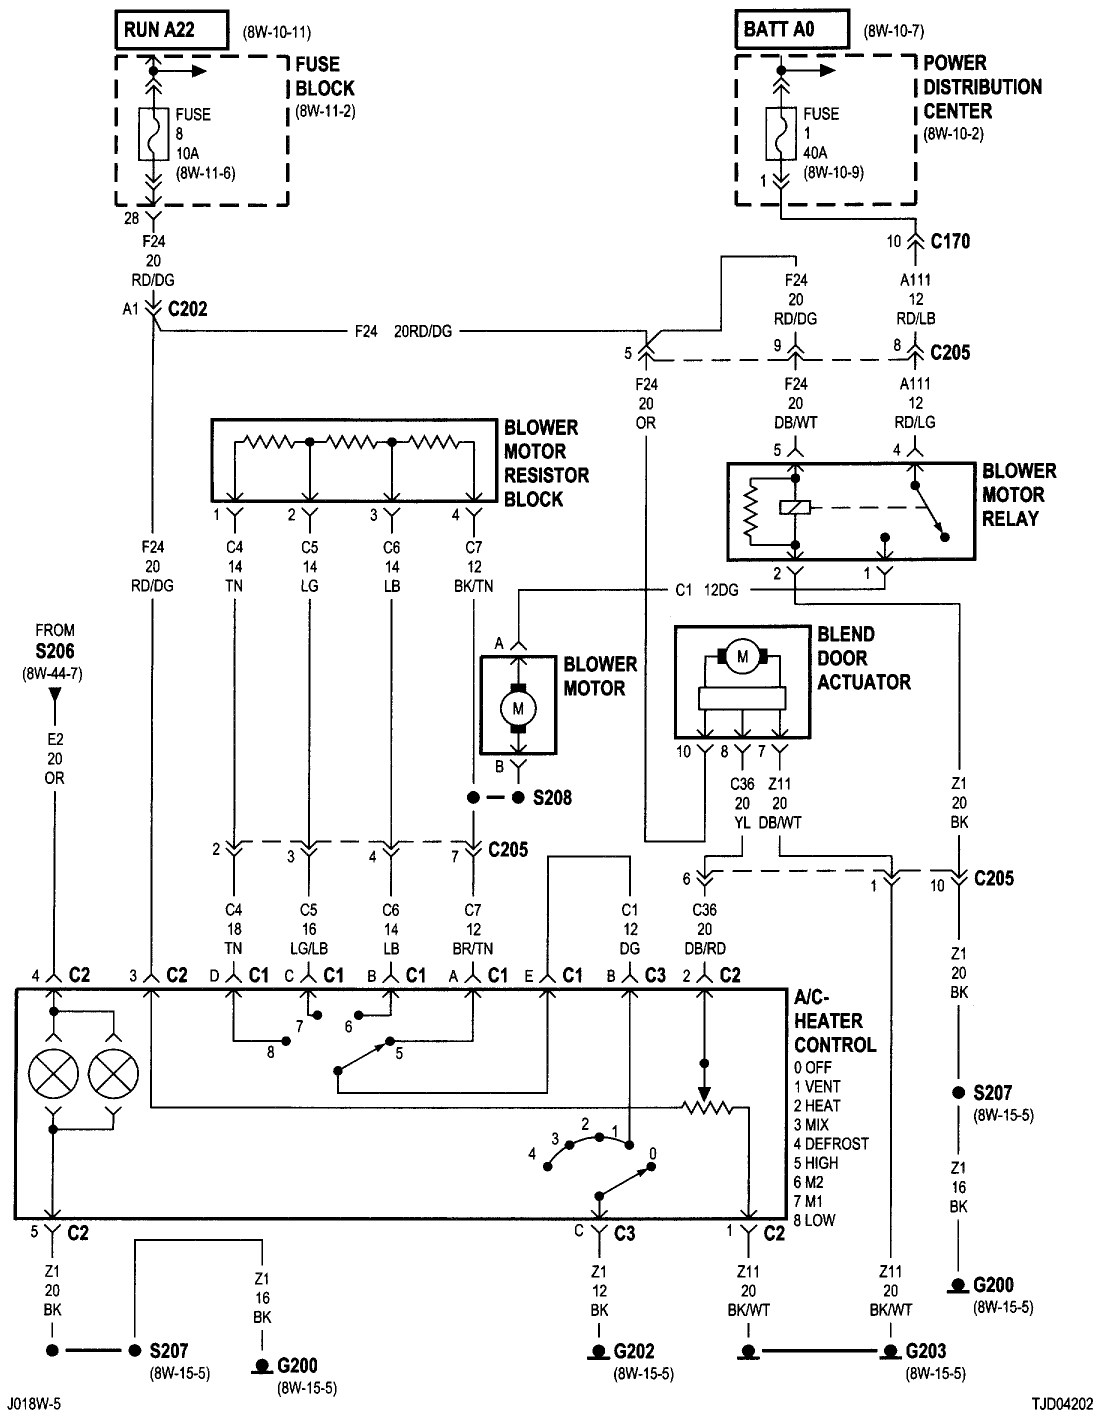 2009 Jeep Liberty Wiring Diagram - wiring diagram solid-page -  solid-page.albergoinsicilia.it | 2005 Jeep Liberty Wiring Diagram |  | solid-page.albergoinsicilia.it